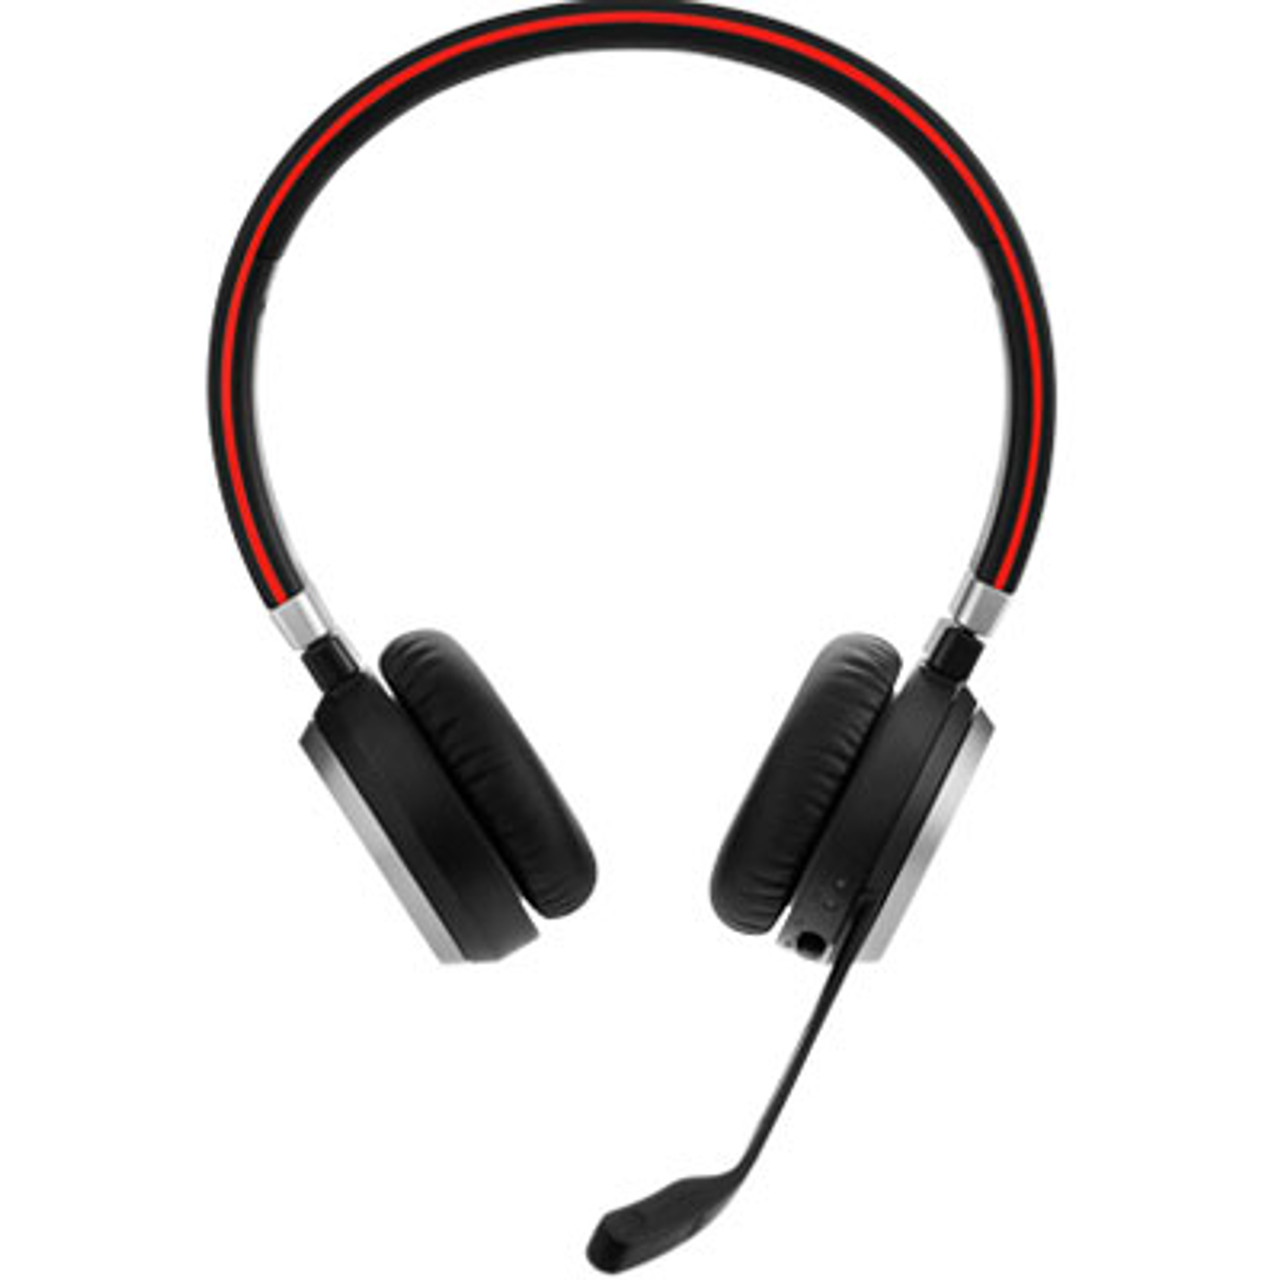 Image for Jabra EVOLVE 65 UC StereoHD Headset CX Computer Superstore